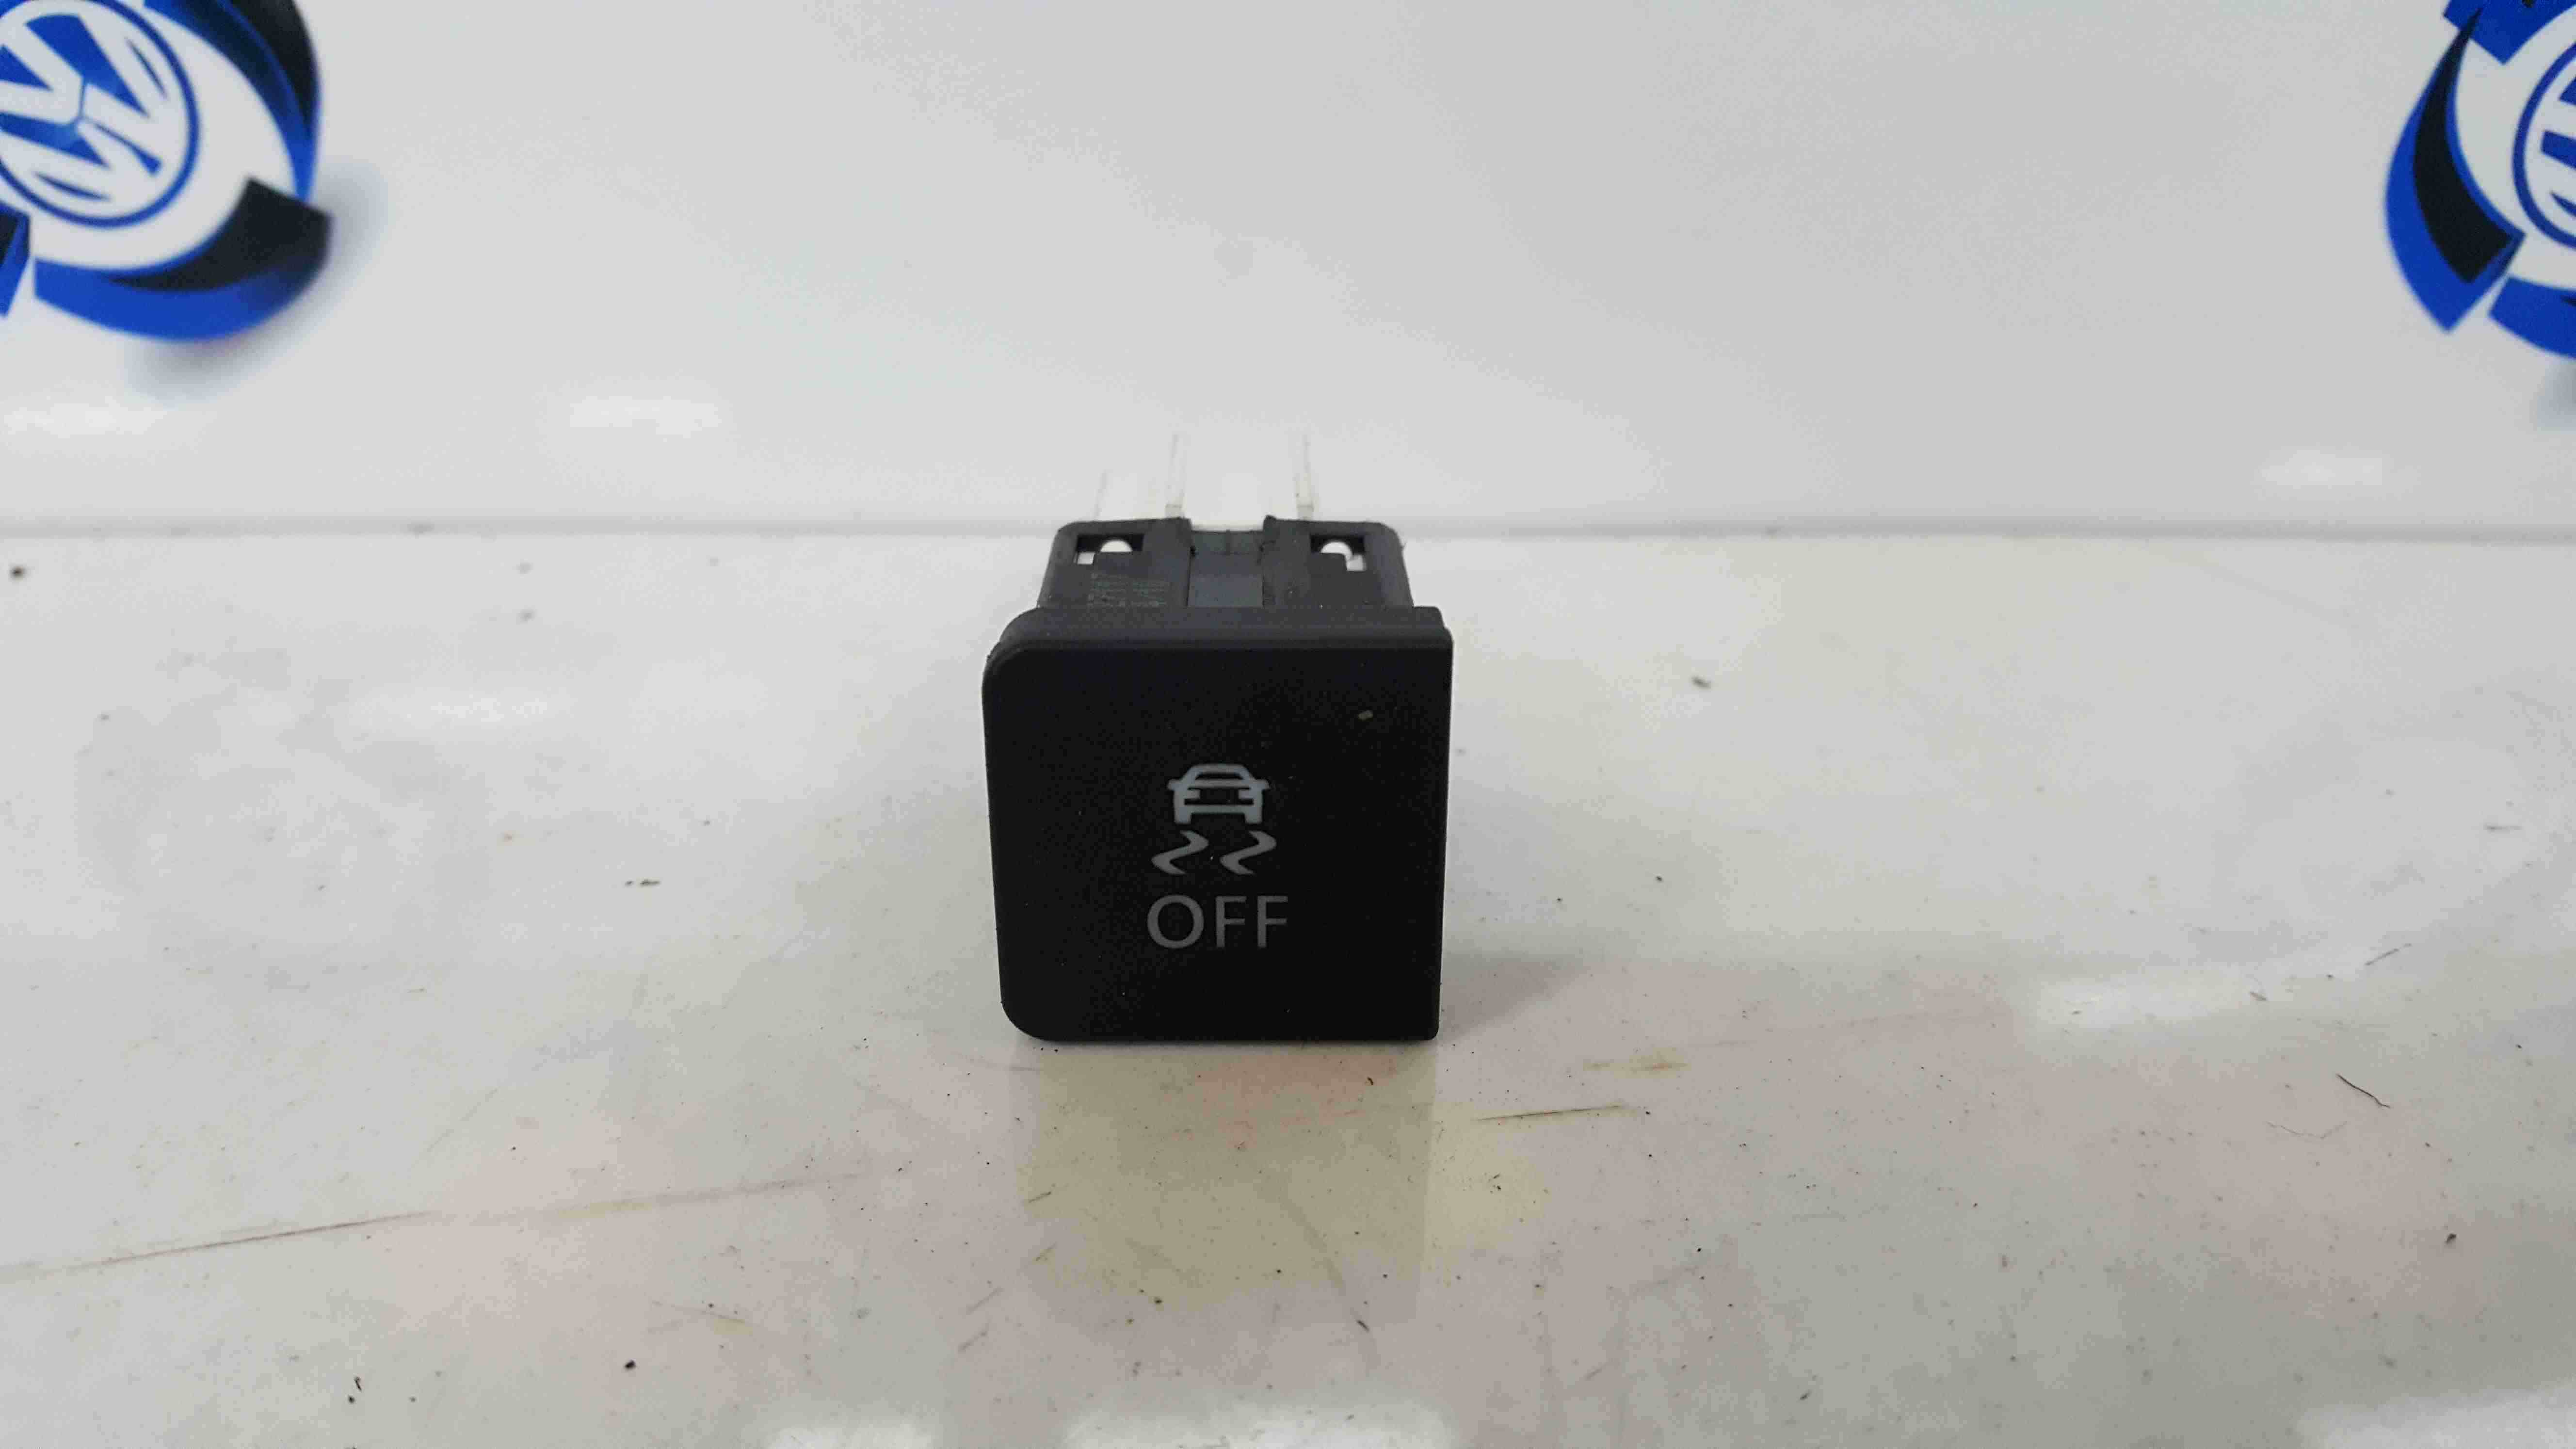 Volkswagen Golf EOS Jetta Touran 2005-2016 ESP Push Button Switch 5K0927117